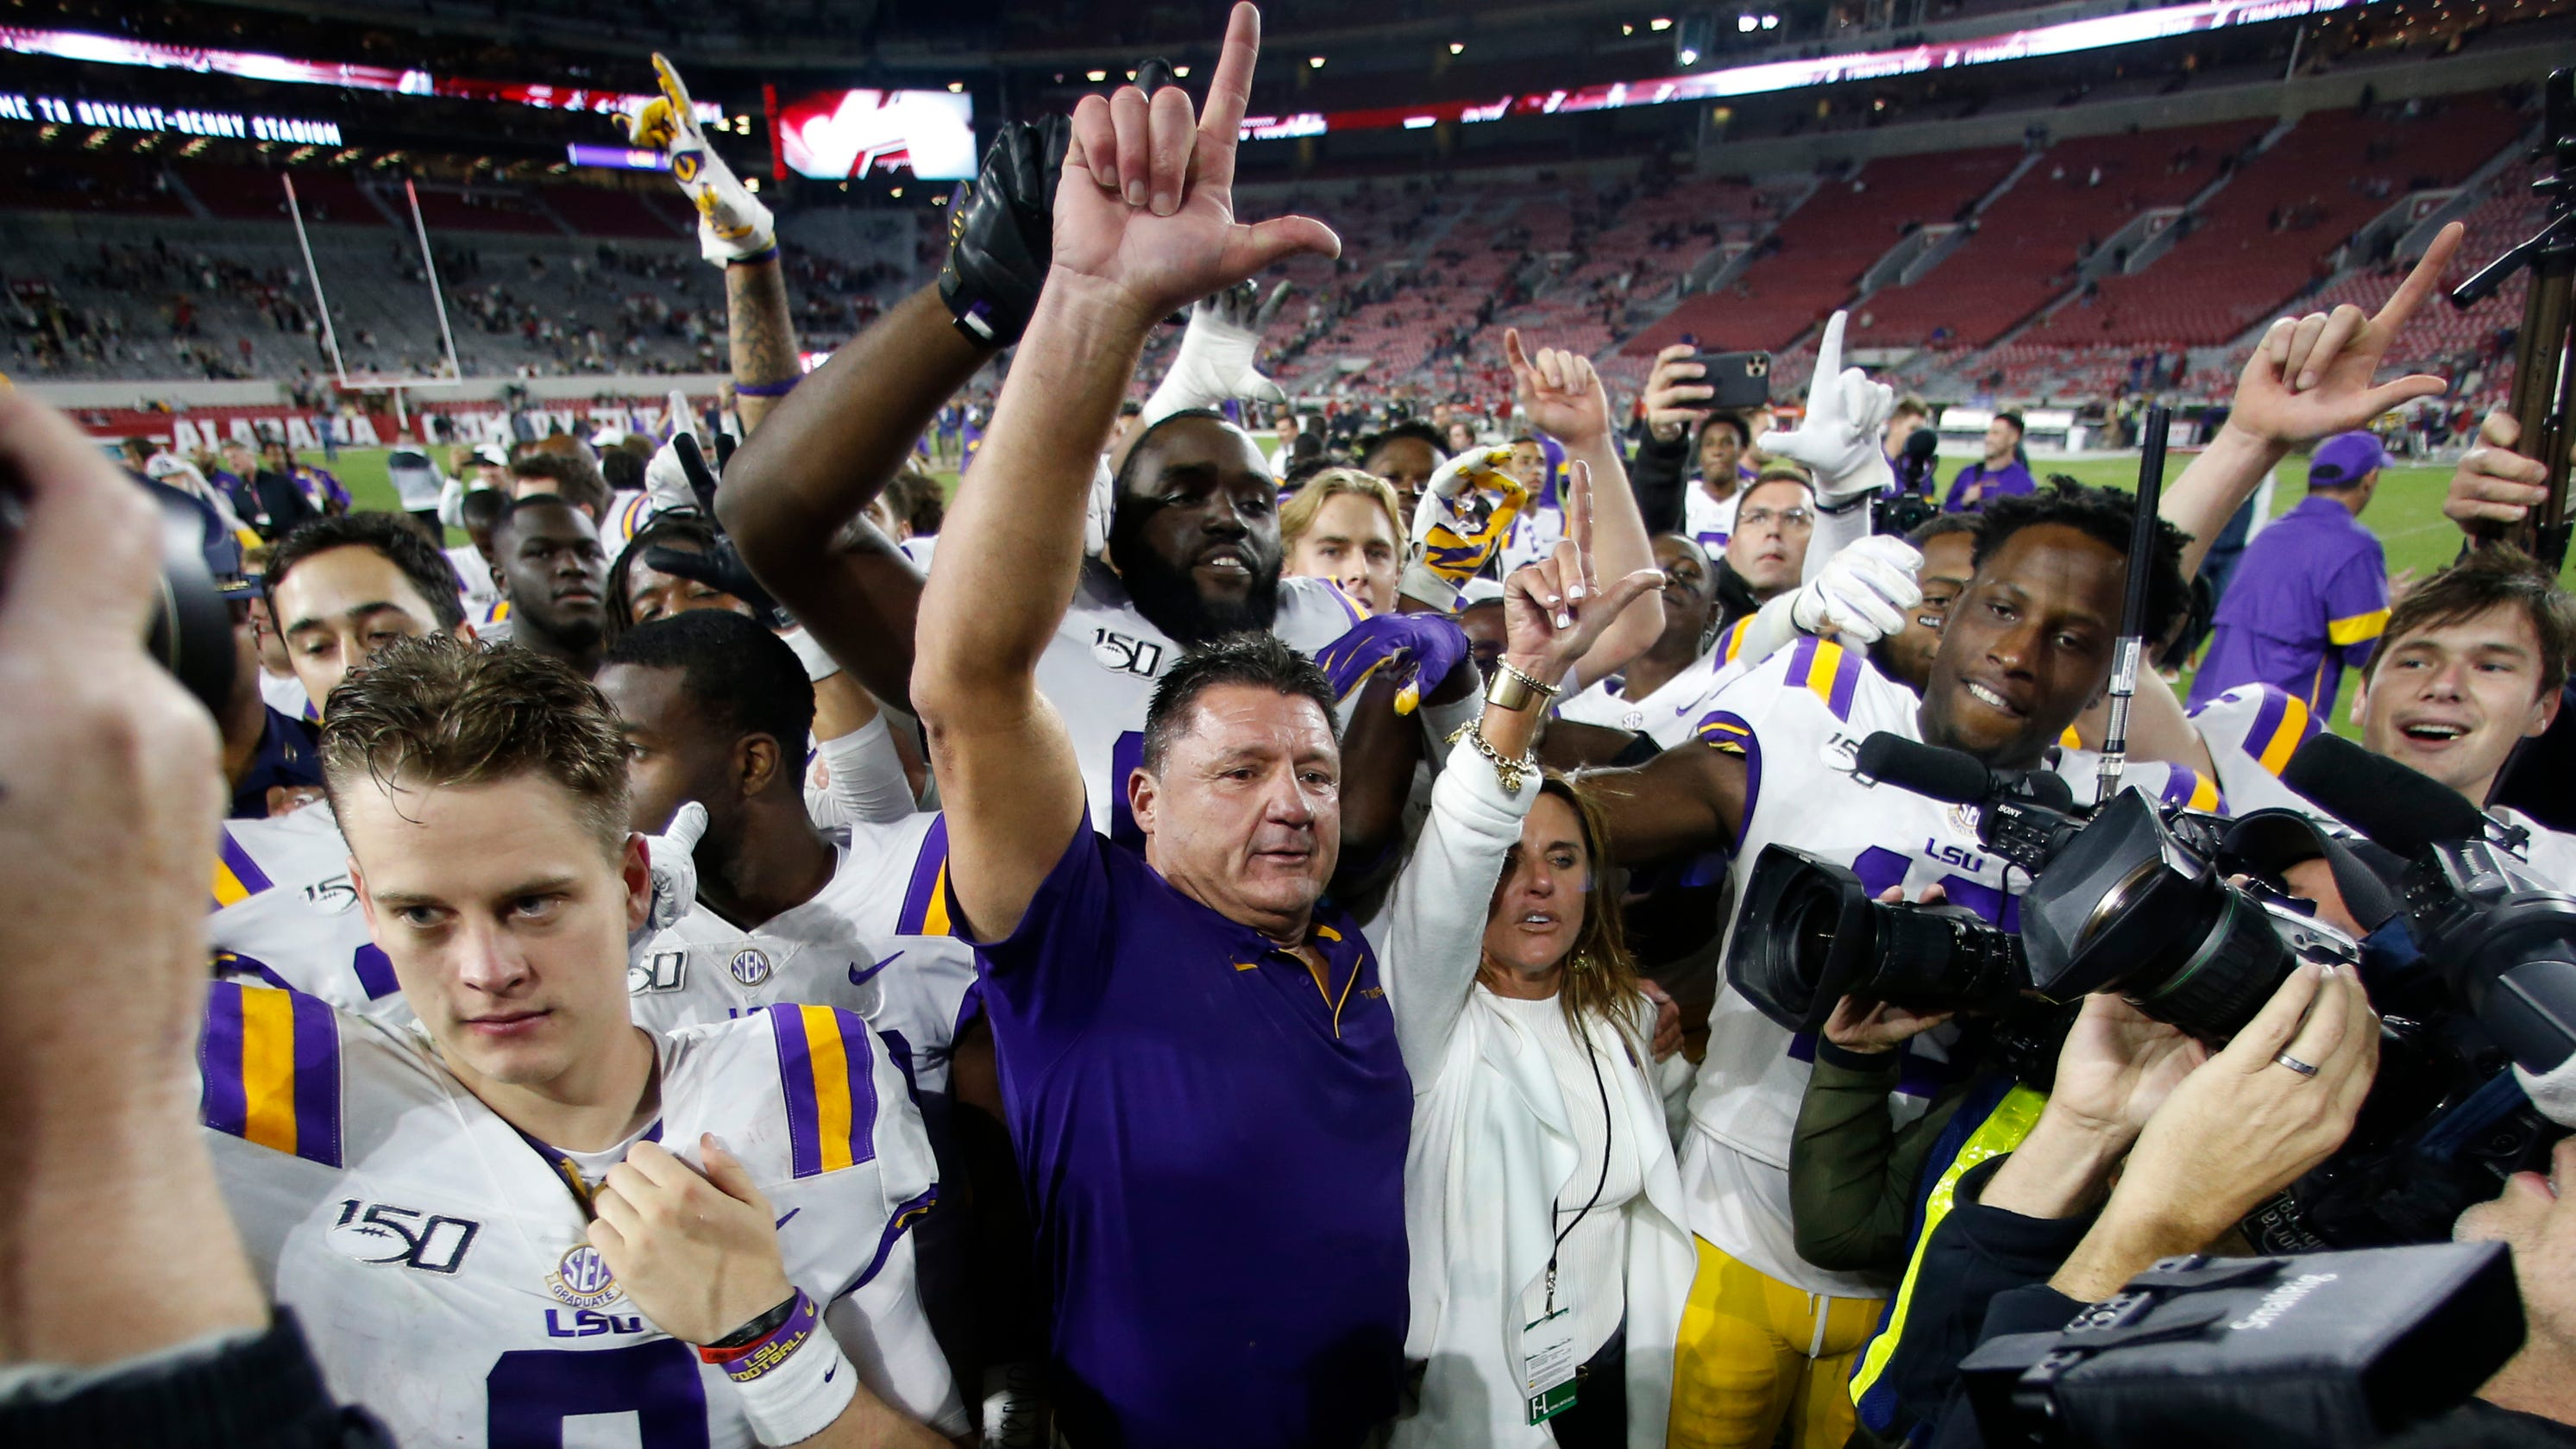 LSU football to add two SEC East teams to all-conference schedule